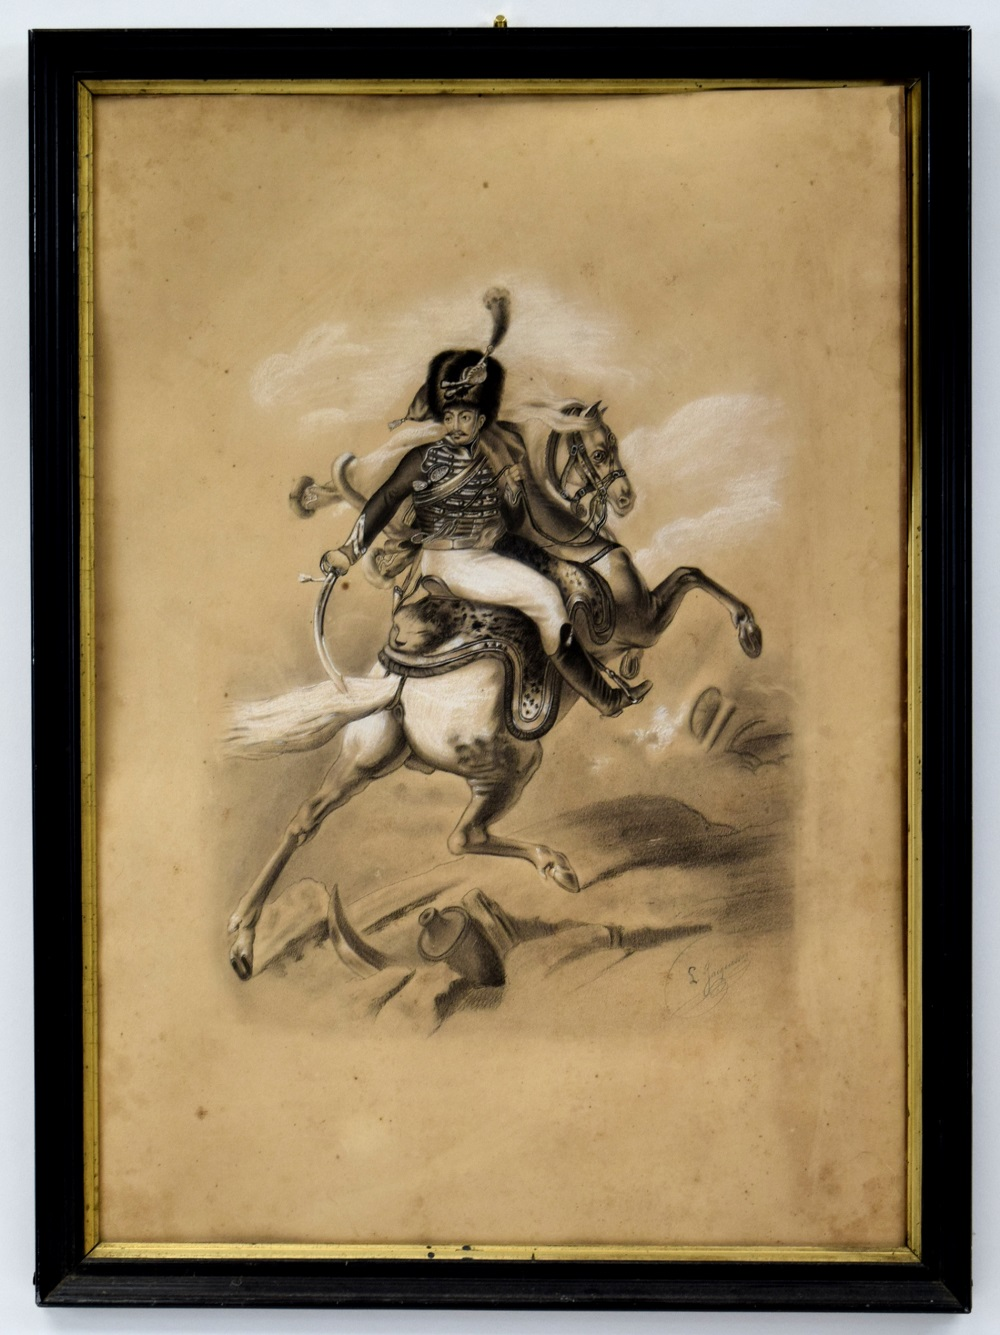 Early 19th C. Charcoal Painting of French Napoleonic Mounted Hussar with a Sword. Artist Signed